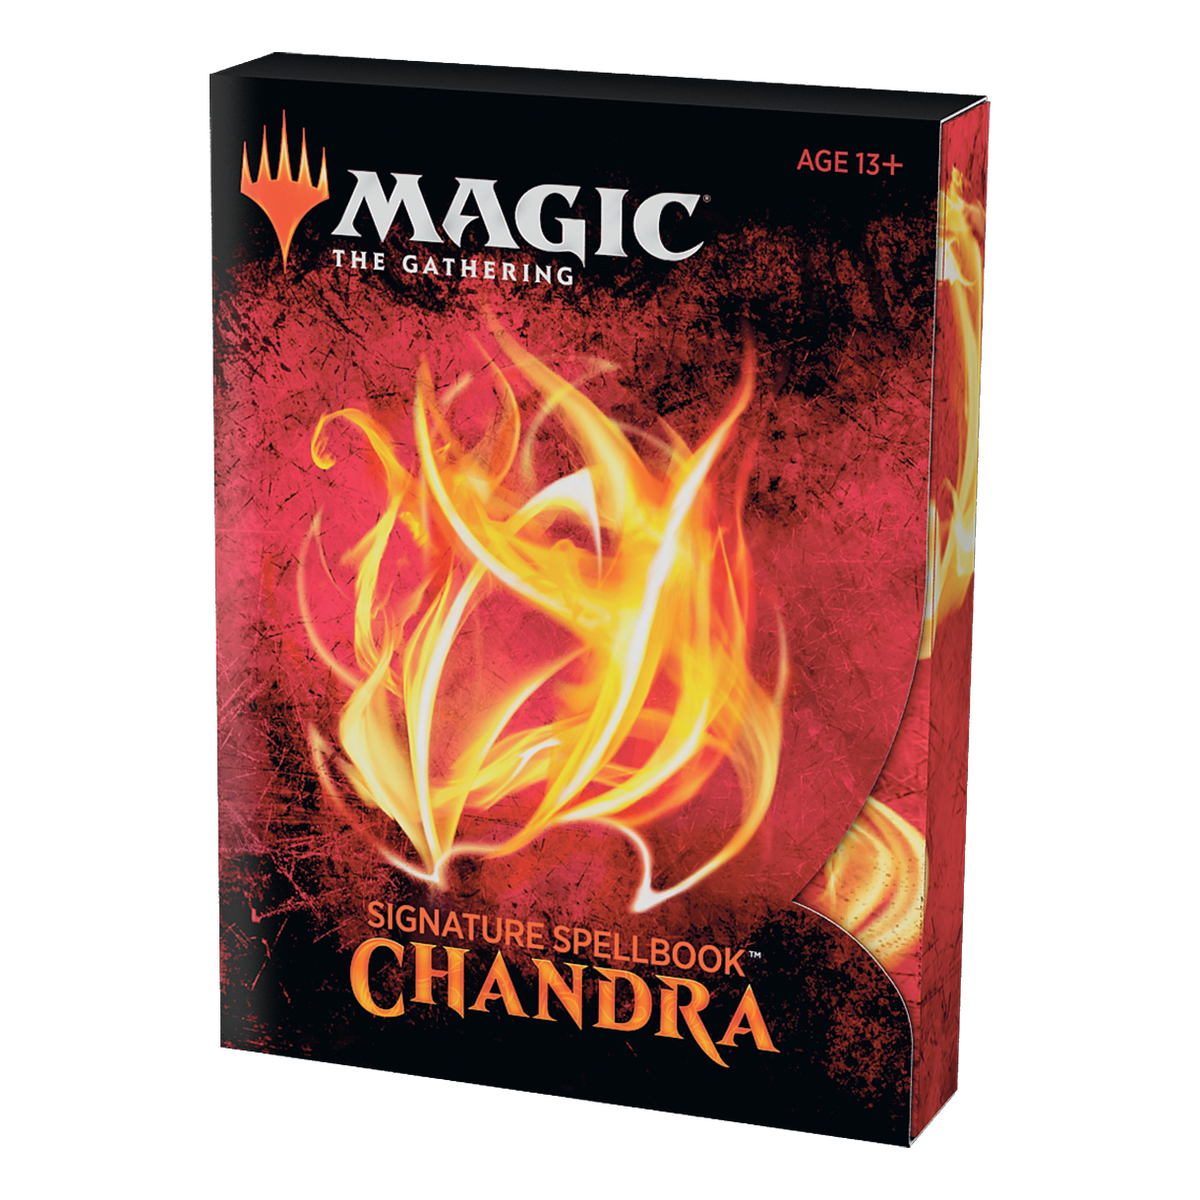 CHANDRA SIGNATURE SPELL BOOK - MAGIC THE GATHERING MTG - NEW FACTORY SEALED